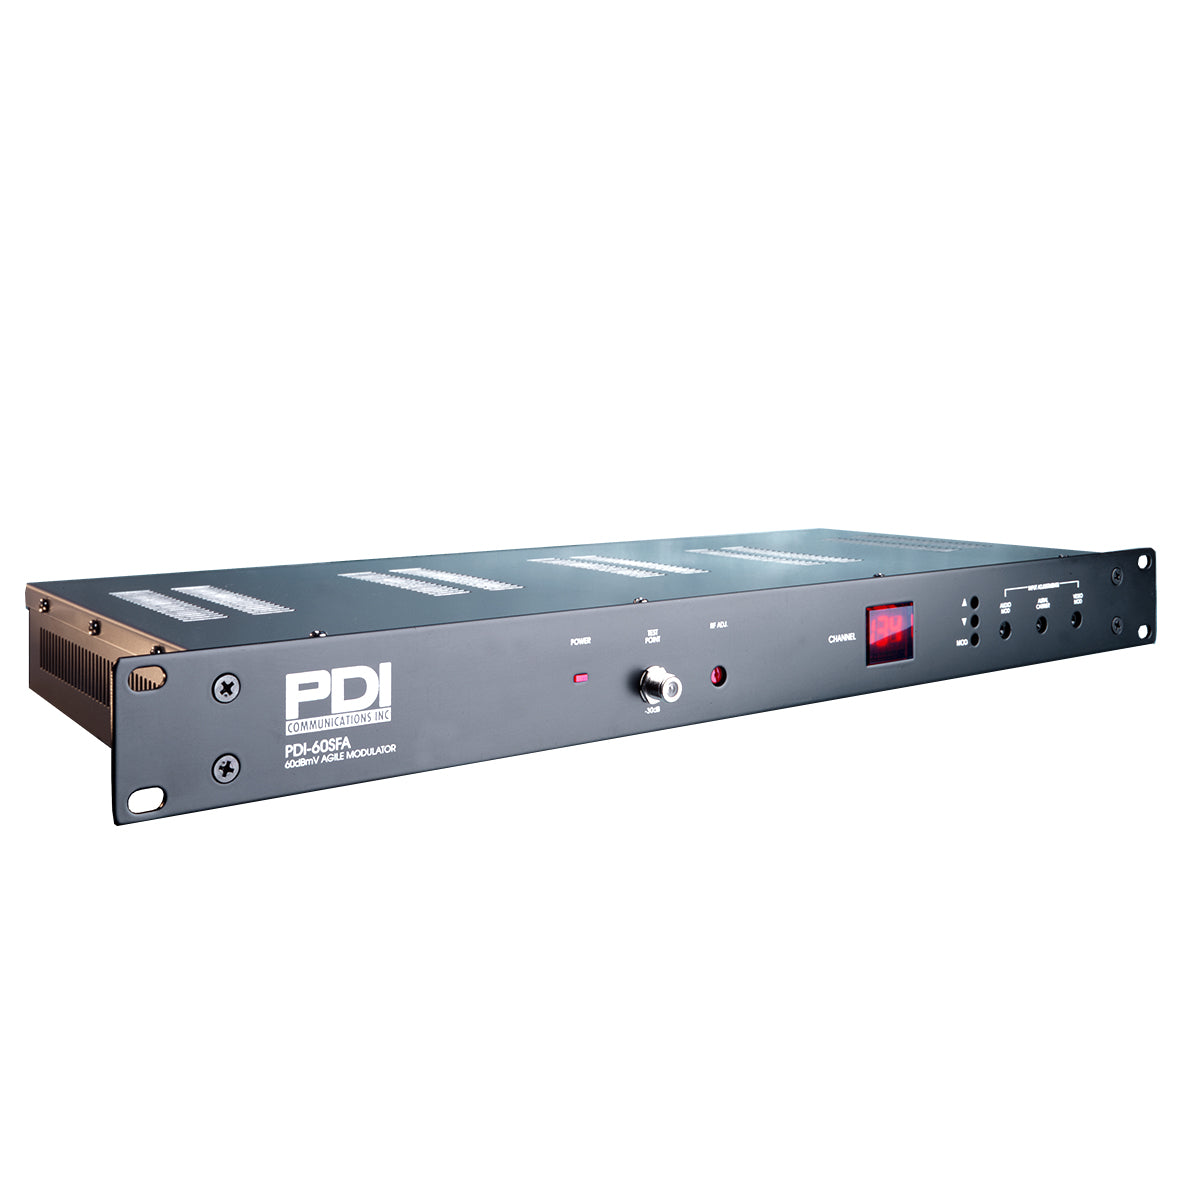 PDI-60SFA 860MHz 60dBmV Low Cost High Performance SAW Filtered Frequency Agile Modulator